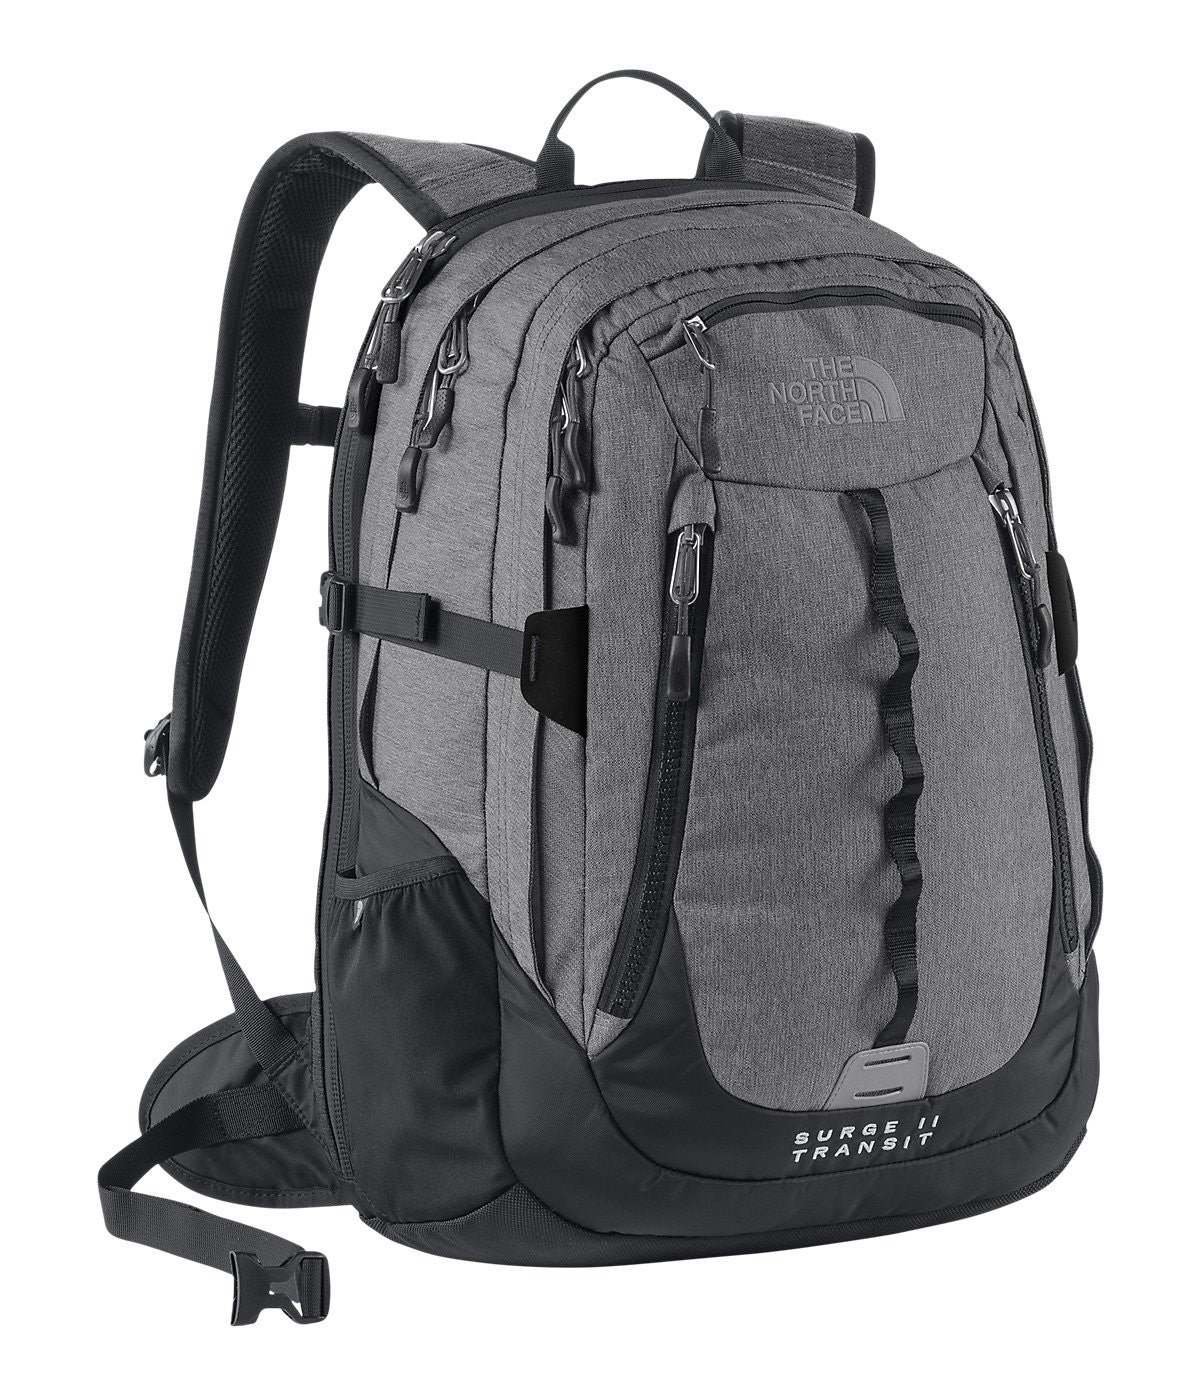 f04607634 The North Face Surge II Transit